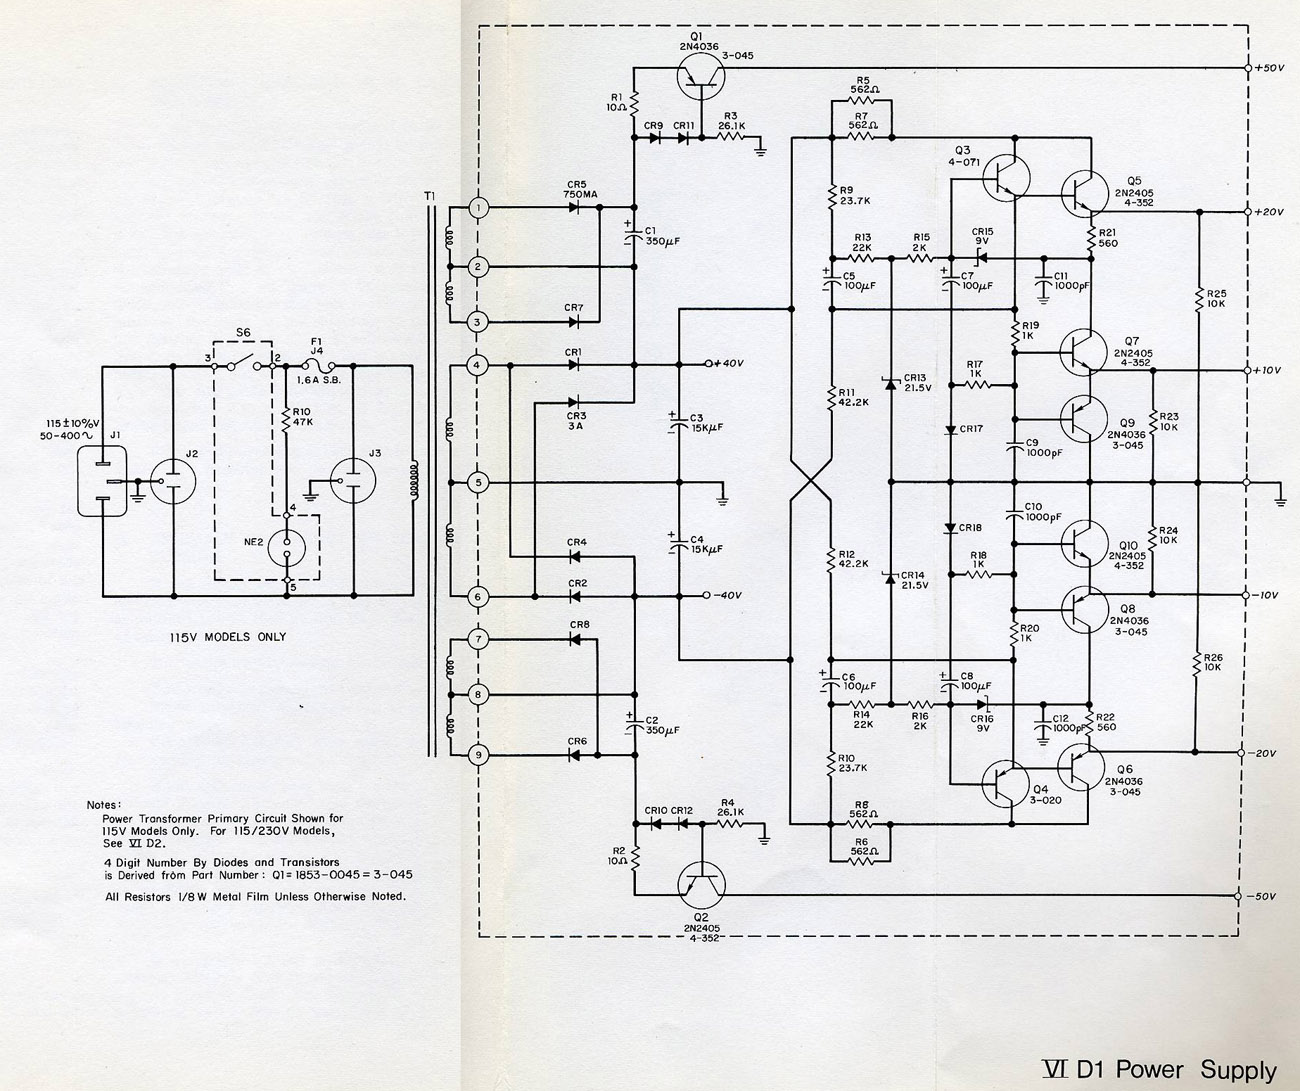 diodetester2 electricalequipmentcircuit circuit diagram online  compaq laptop power supply wiring auto electrical wiring diagramdiodetester2 electricalequipmentcircuit circuit diagram 19